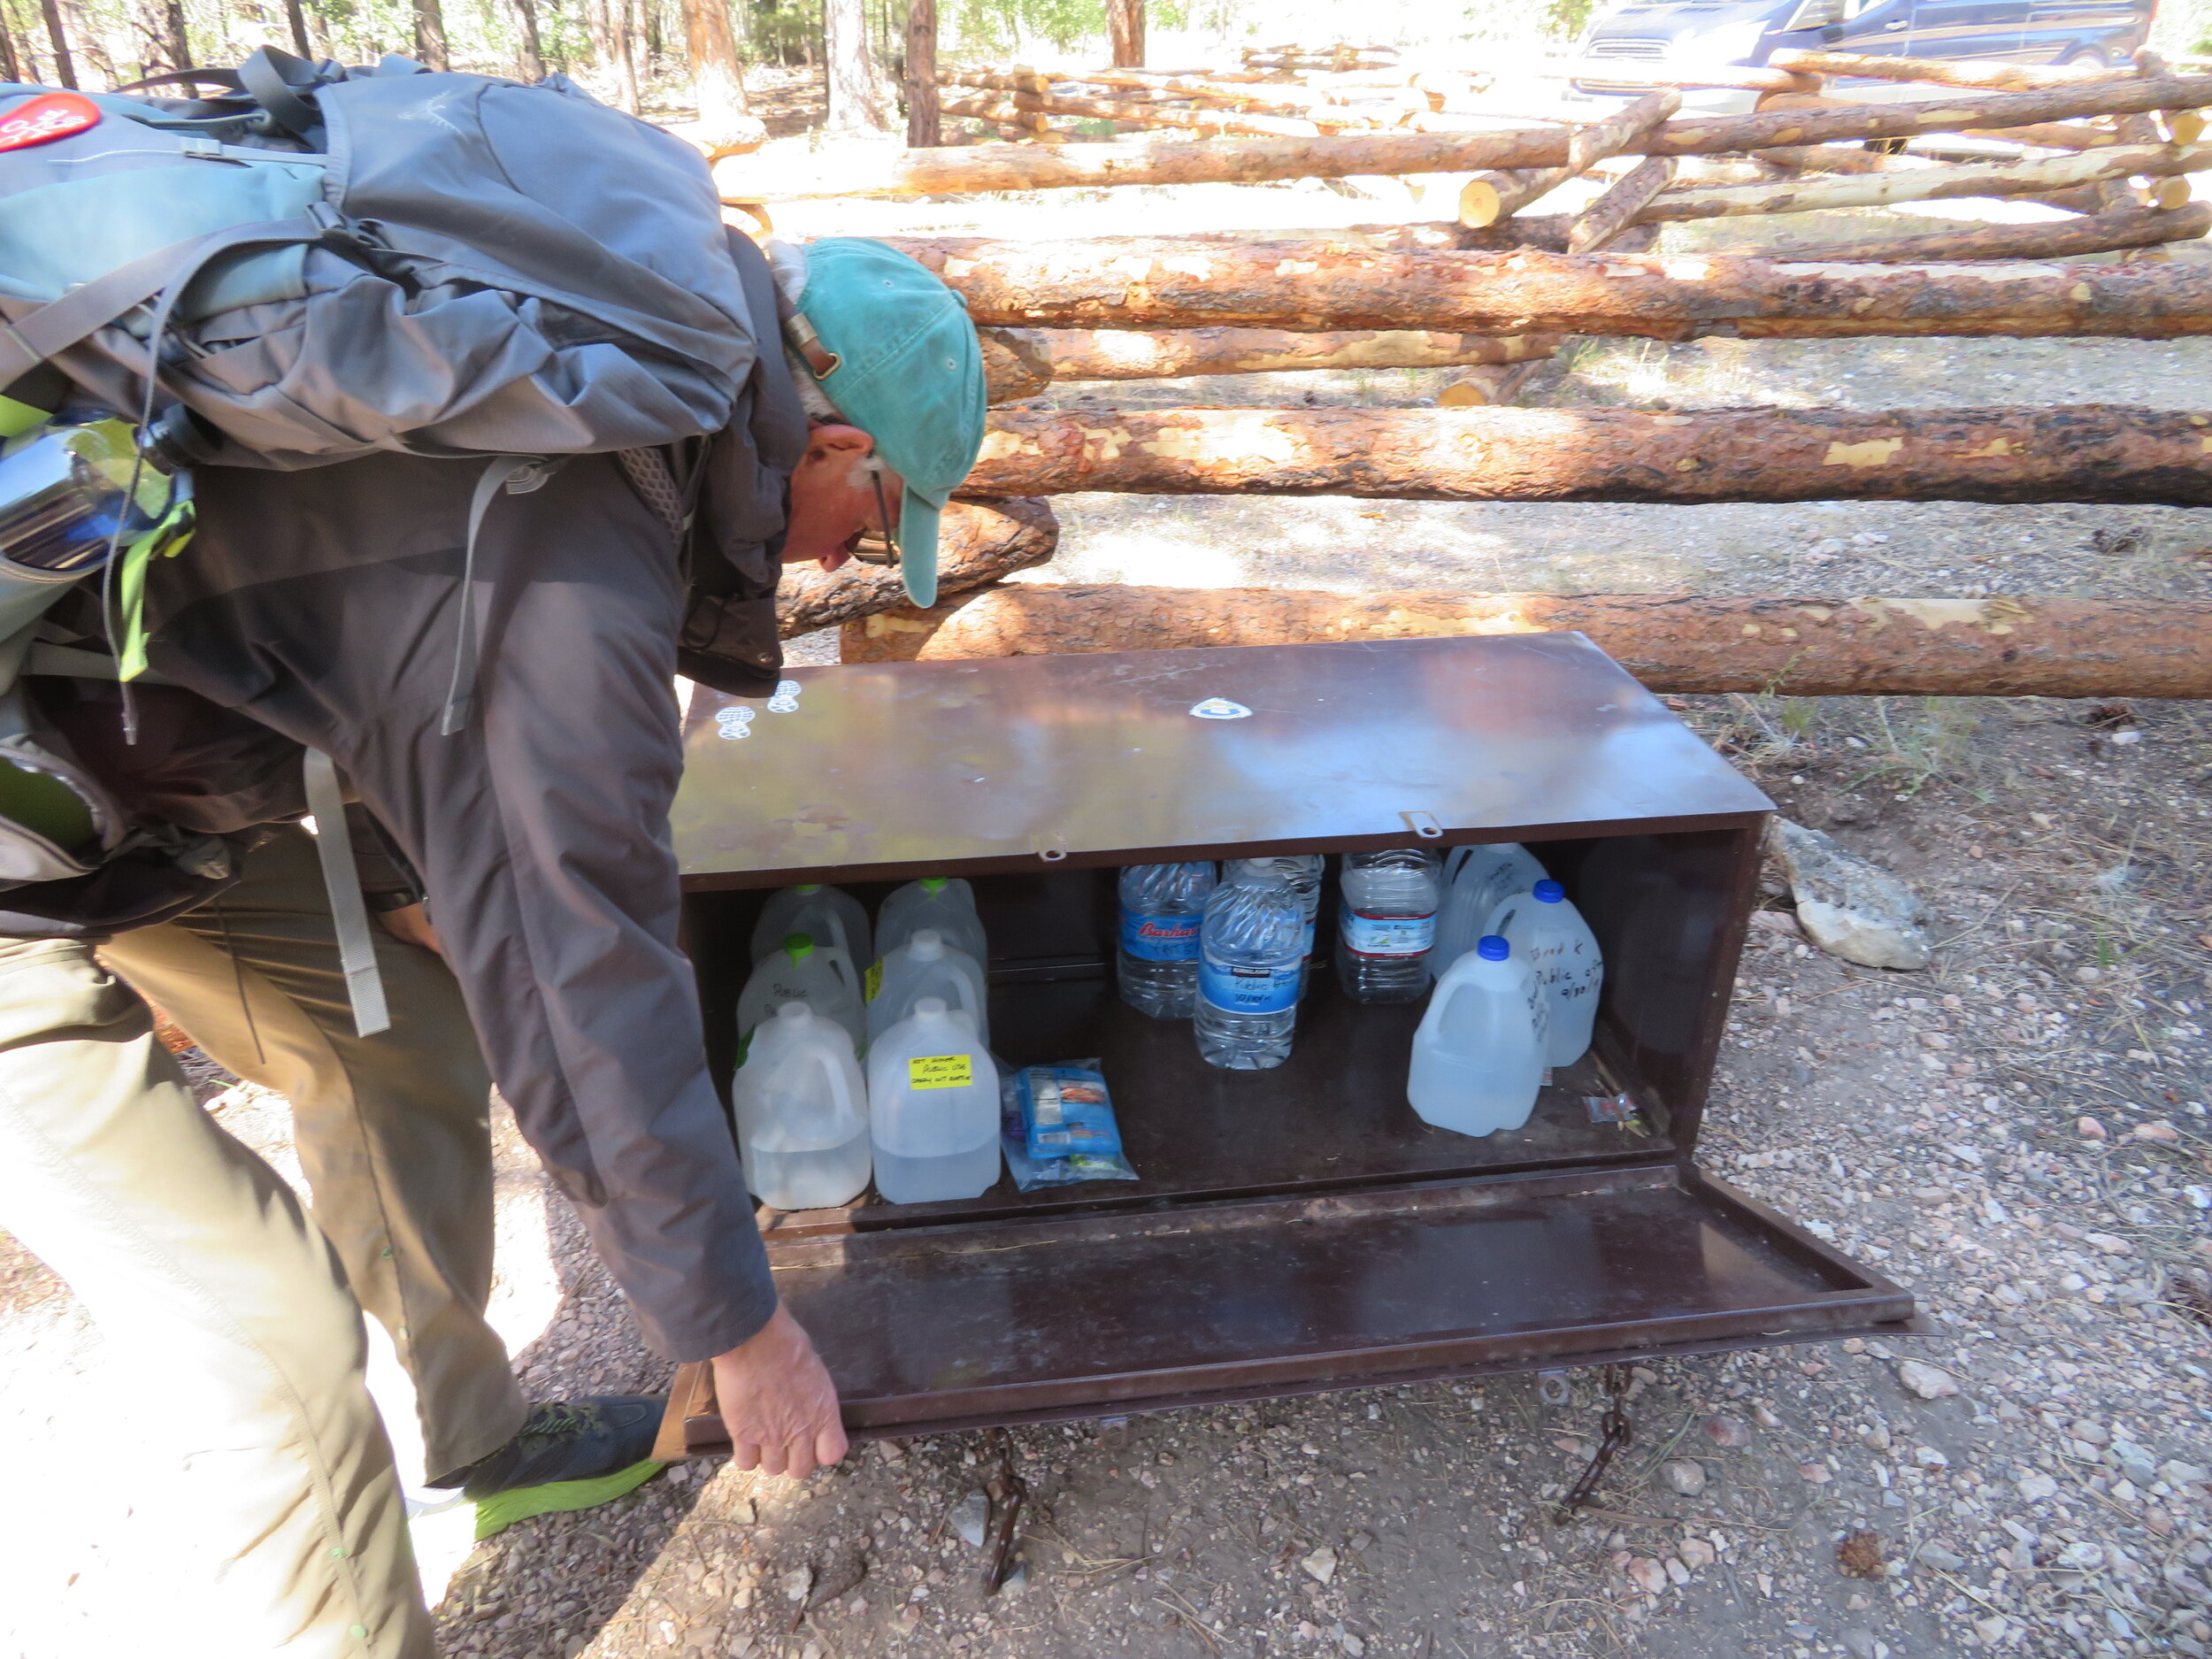 A food & water cache/safe at an AZT trailhead